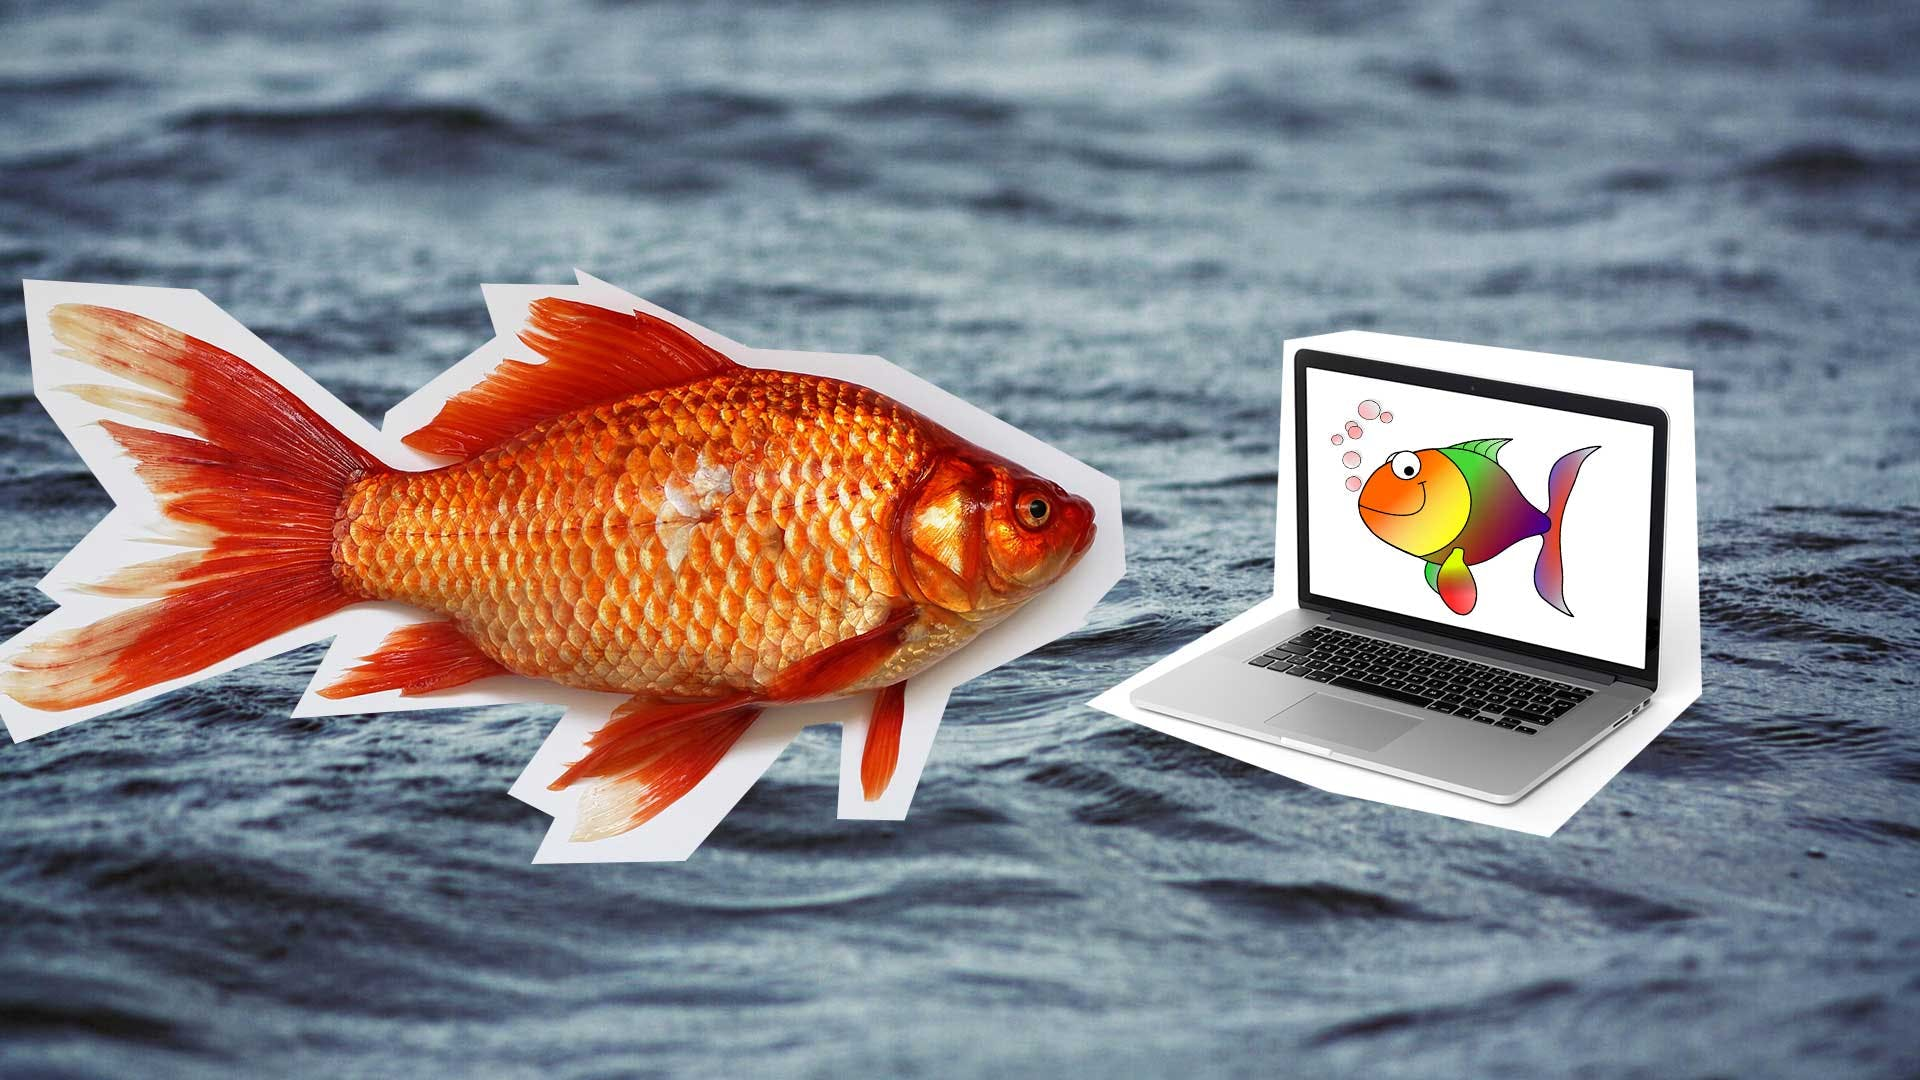 A goldfish looking at a laptop with a picture of rainbow fish on it